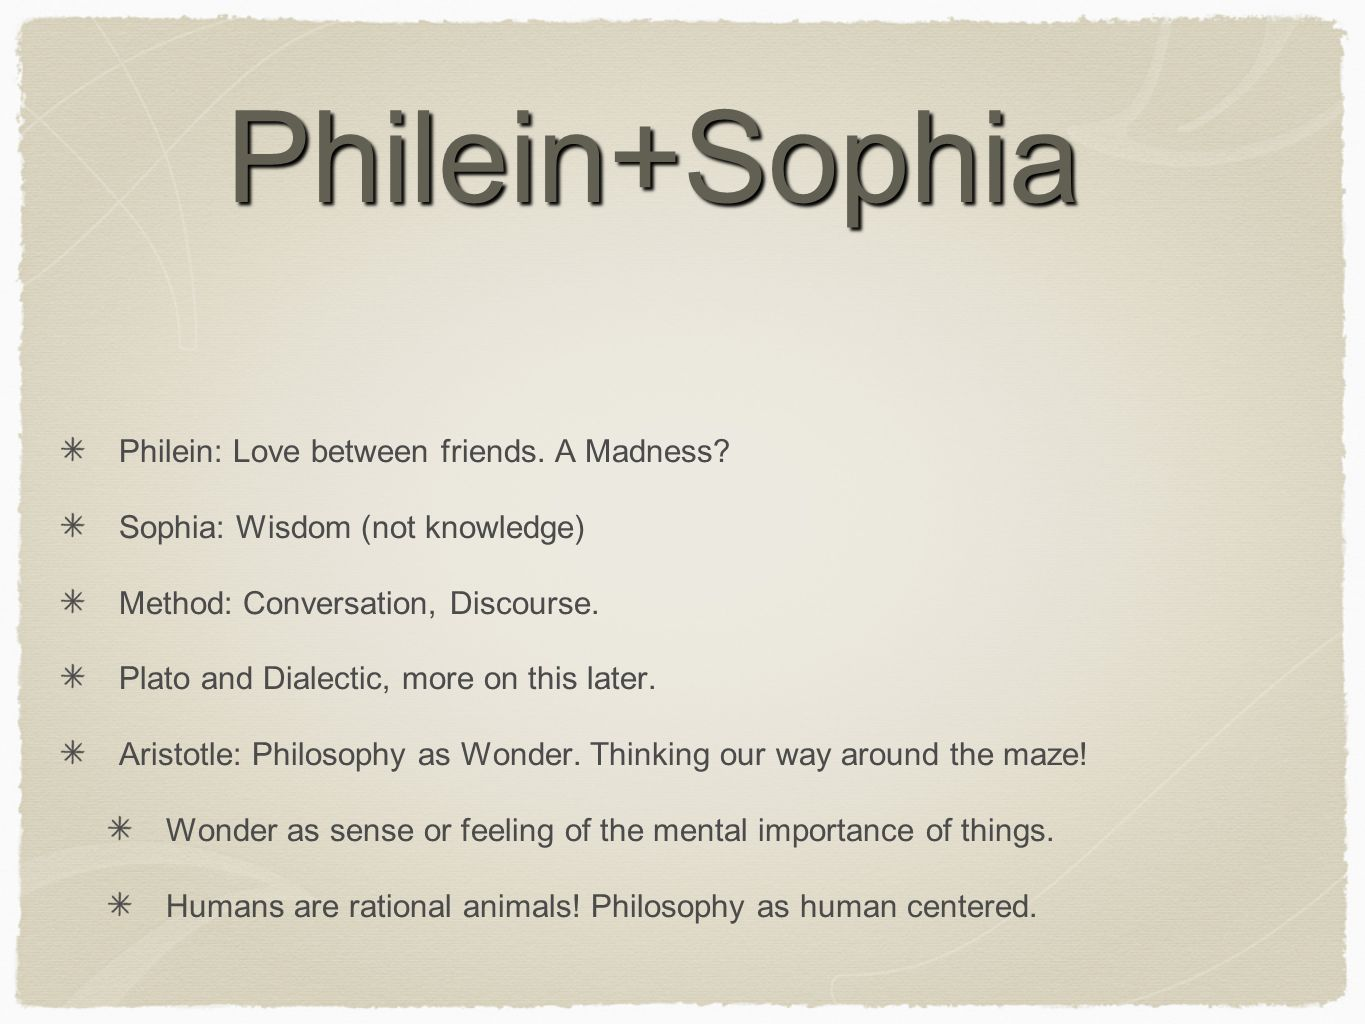 Philein+Sophia Philein: Love between friends. A Madness.